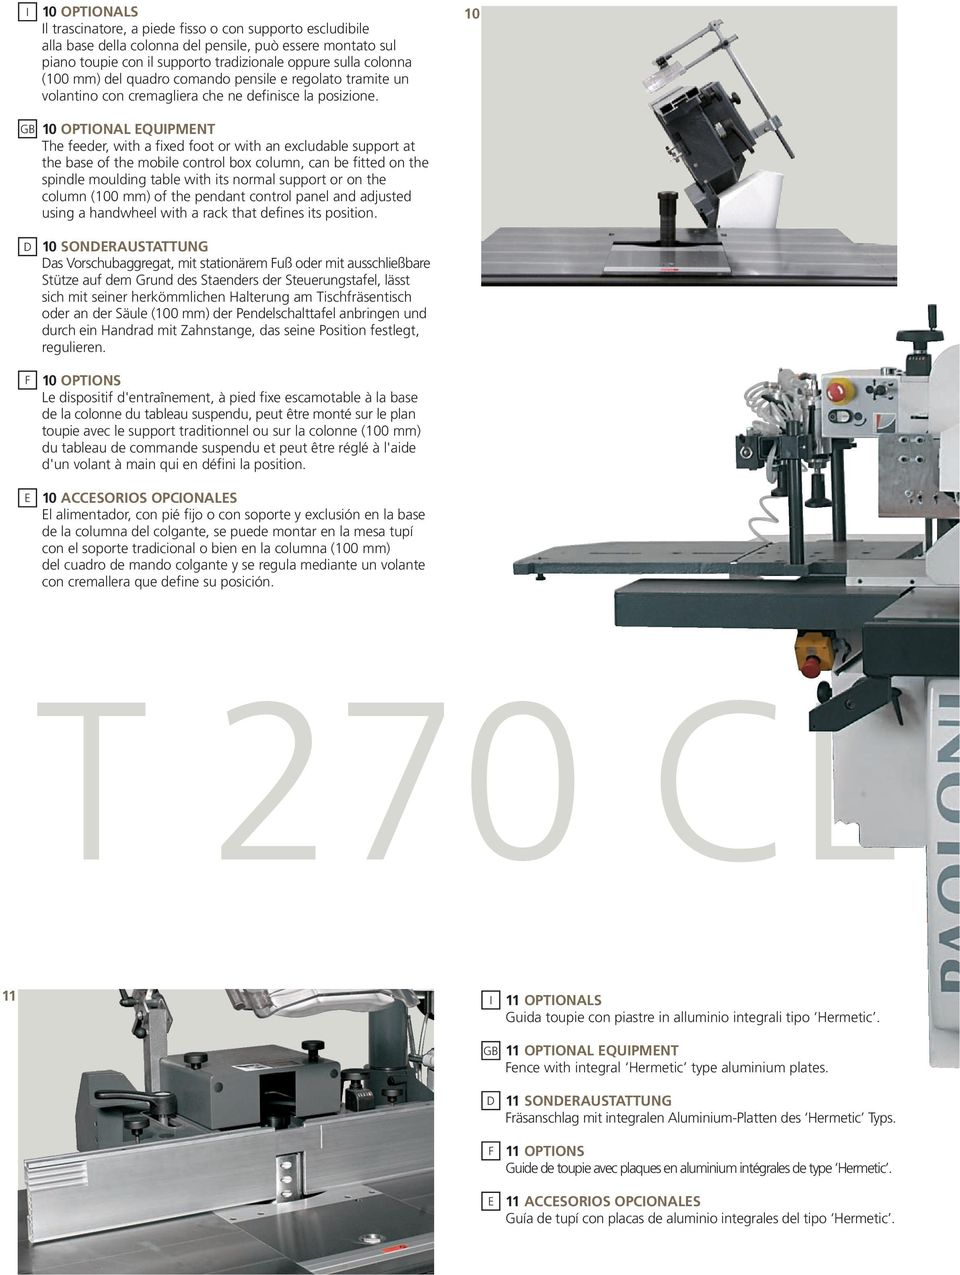 10 10 OPTIONAL QUIPMNT The feeder, with a fixed foot or with an excludable support at the base of the mobile control box column, can be fitted on the spindle moulding table with its normal support or